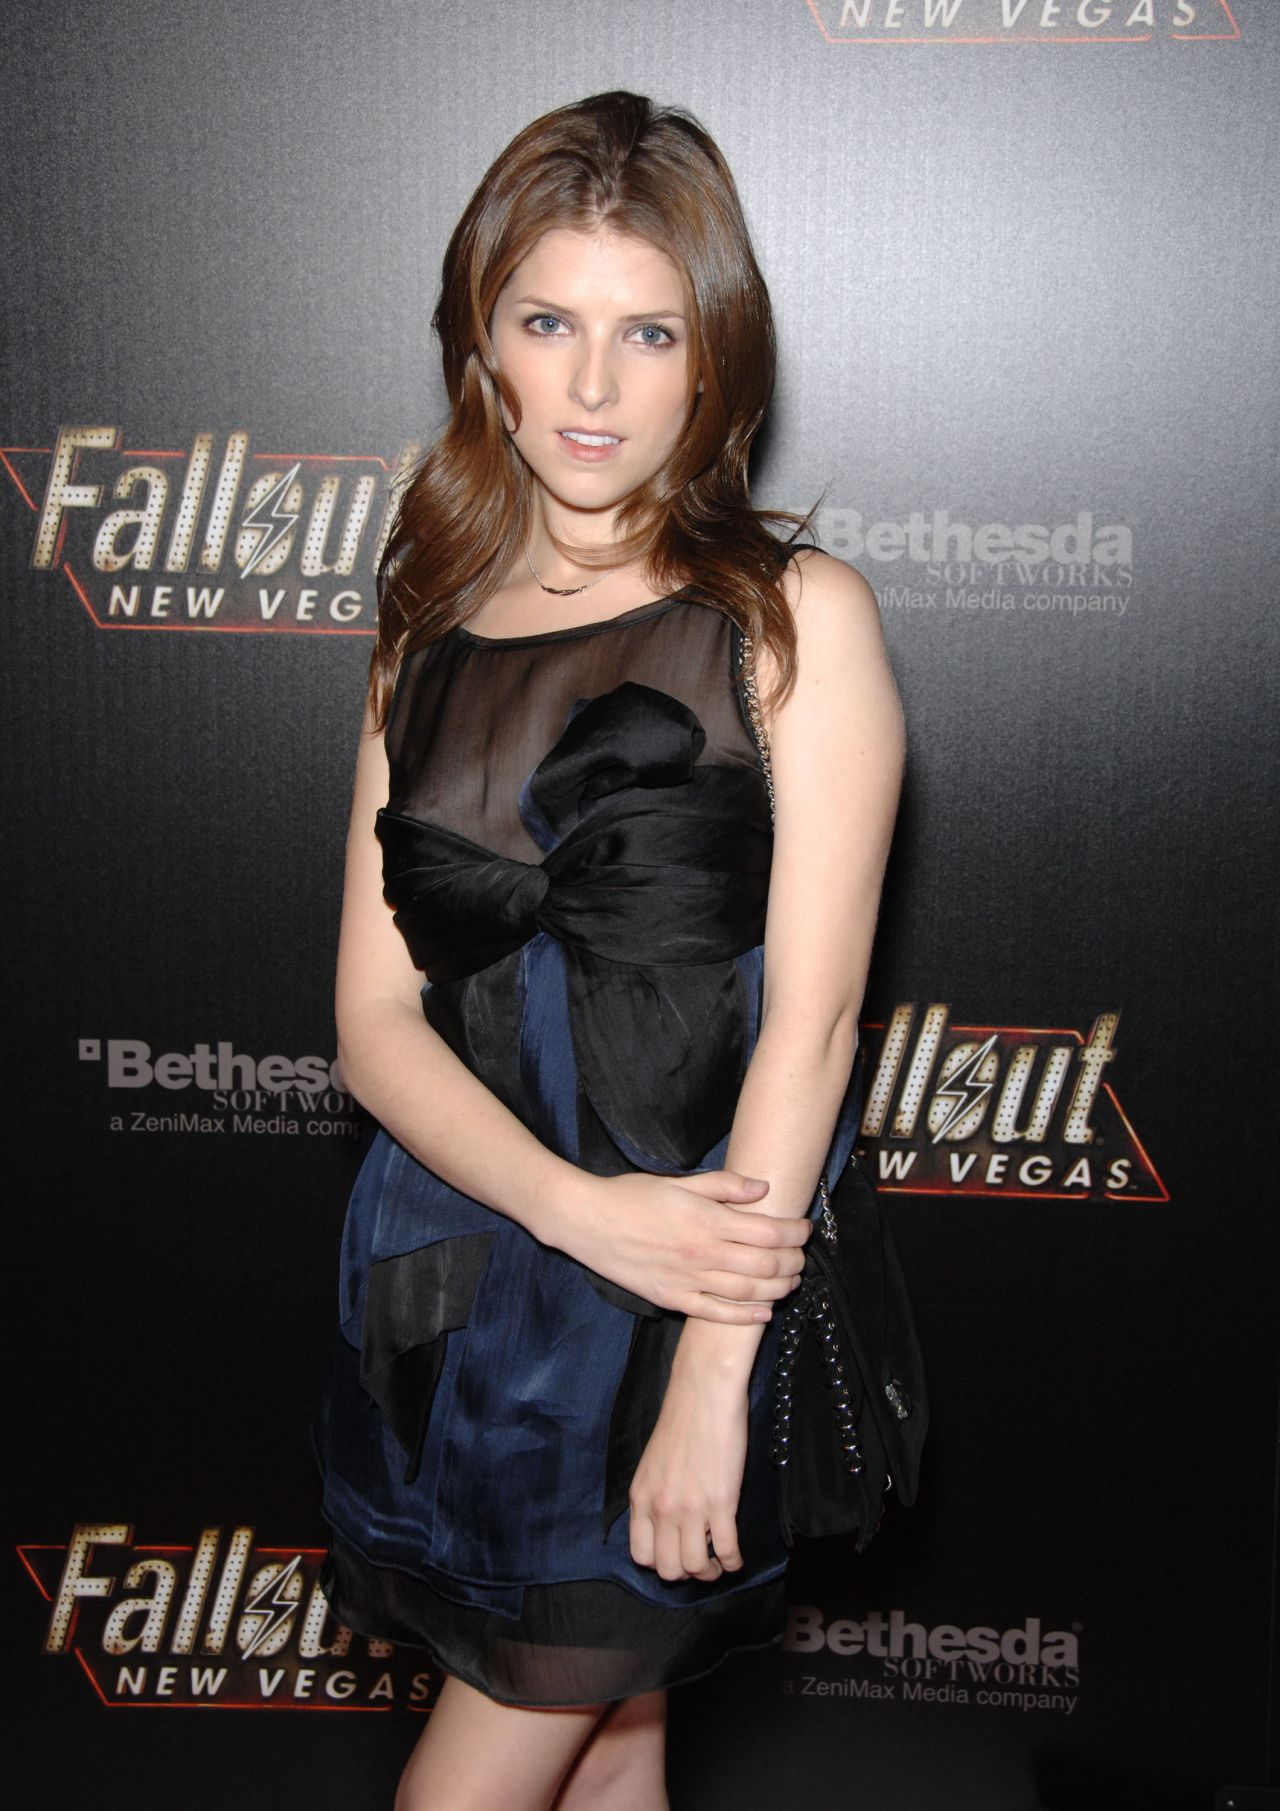 Anna Kendrick Fallout New Vegas Launch Party